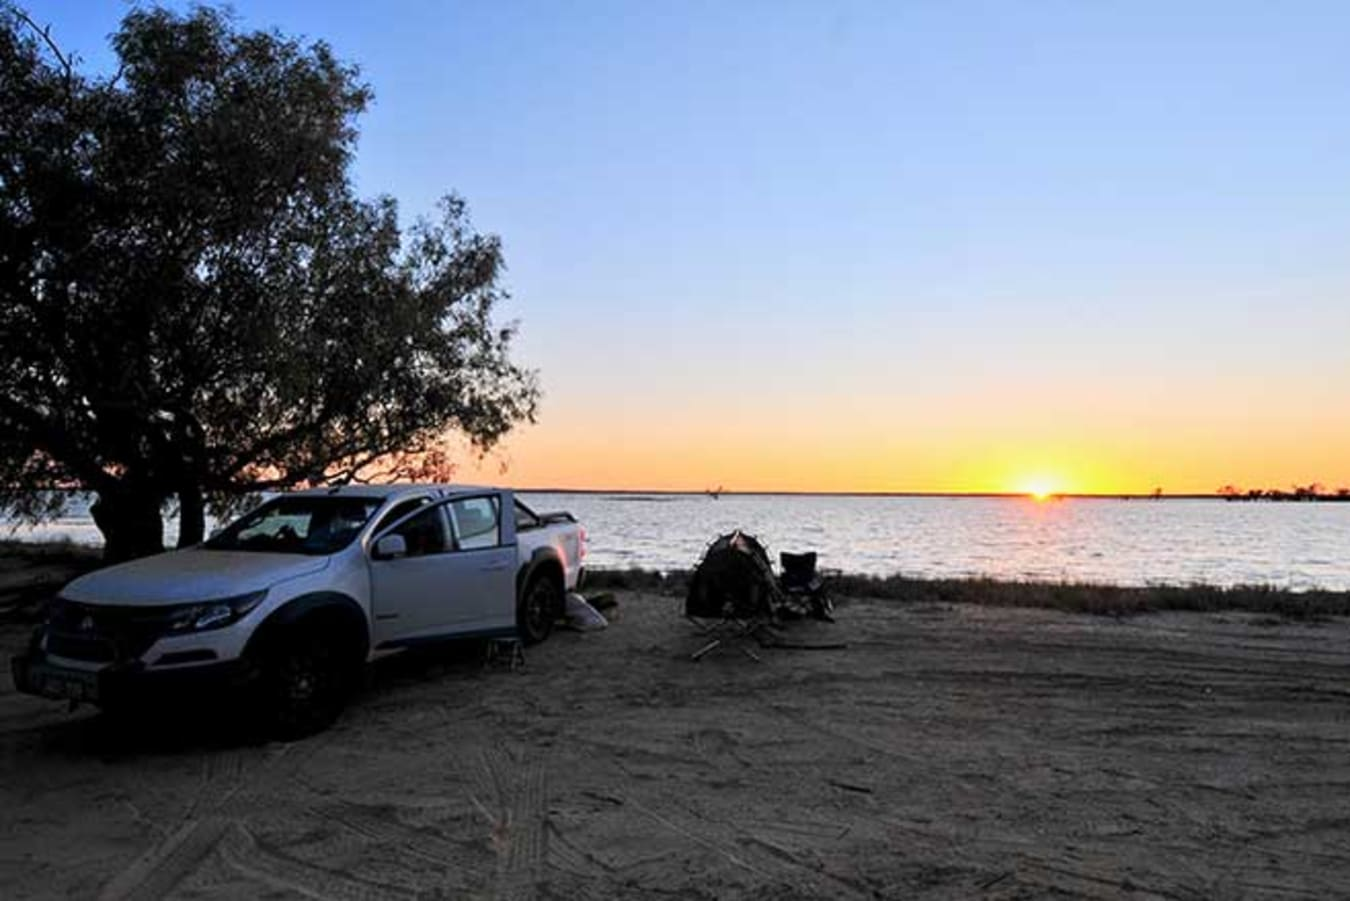 Coongie Lakes 4x4 adventure